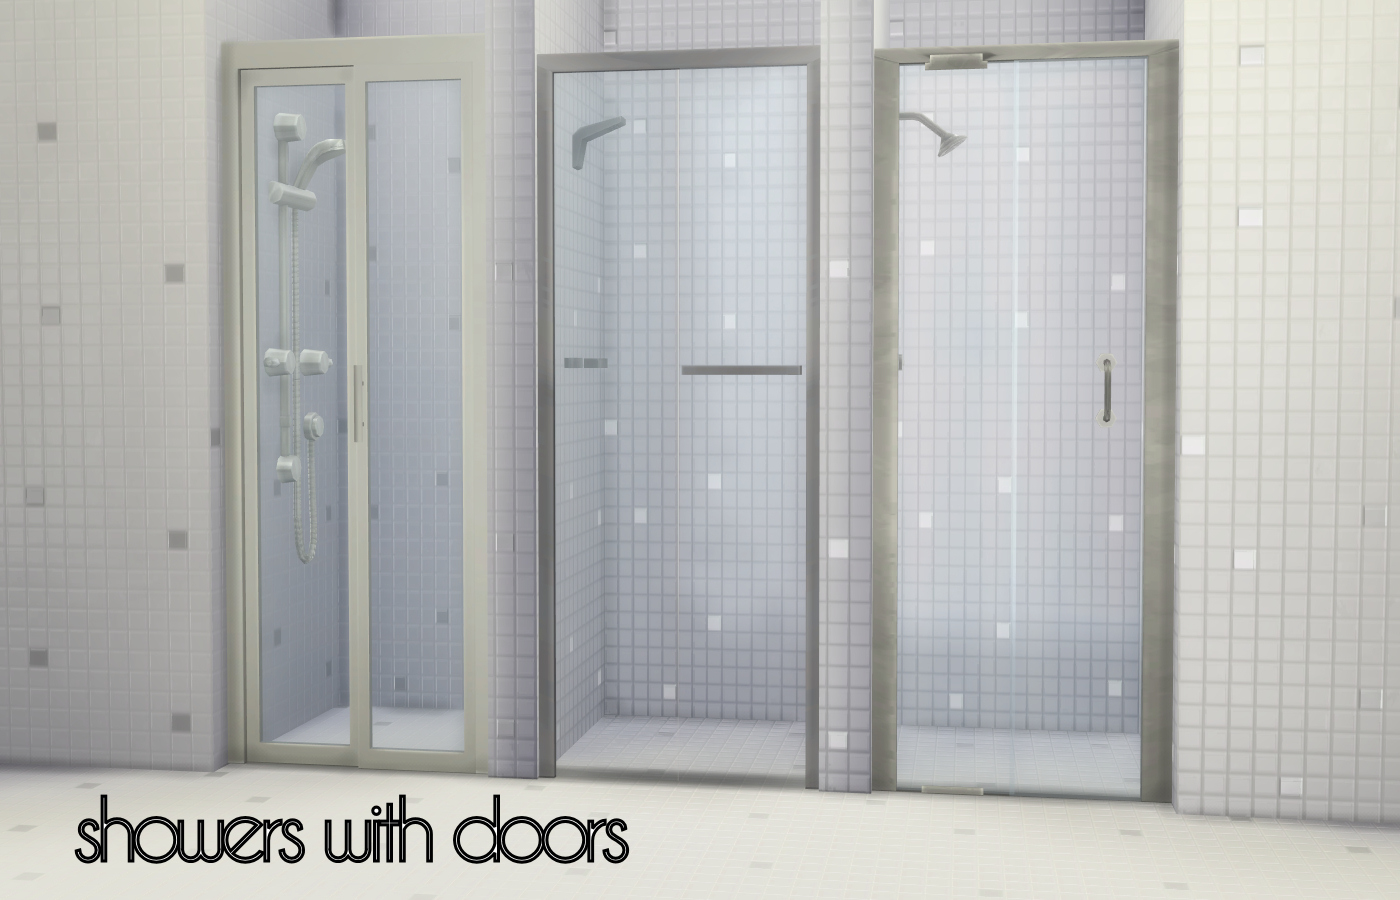 Sims 4 Cc S The Best Build A Shower Kit By Madhox